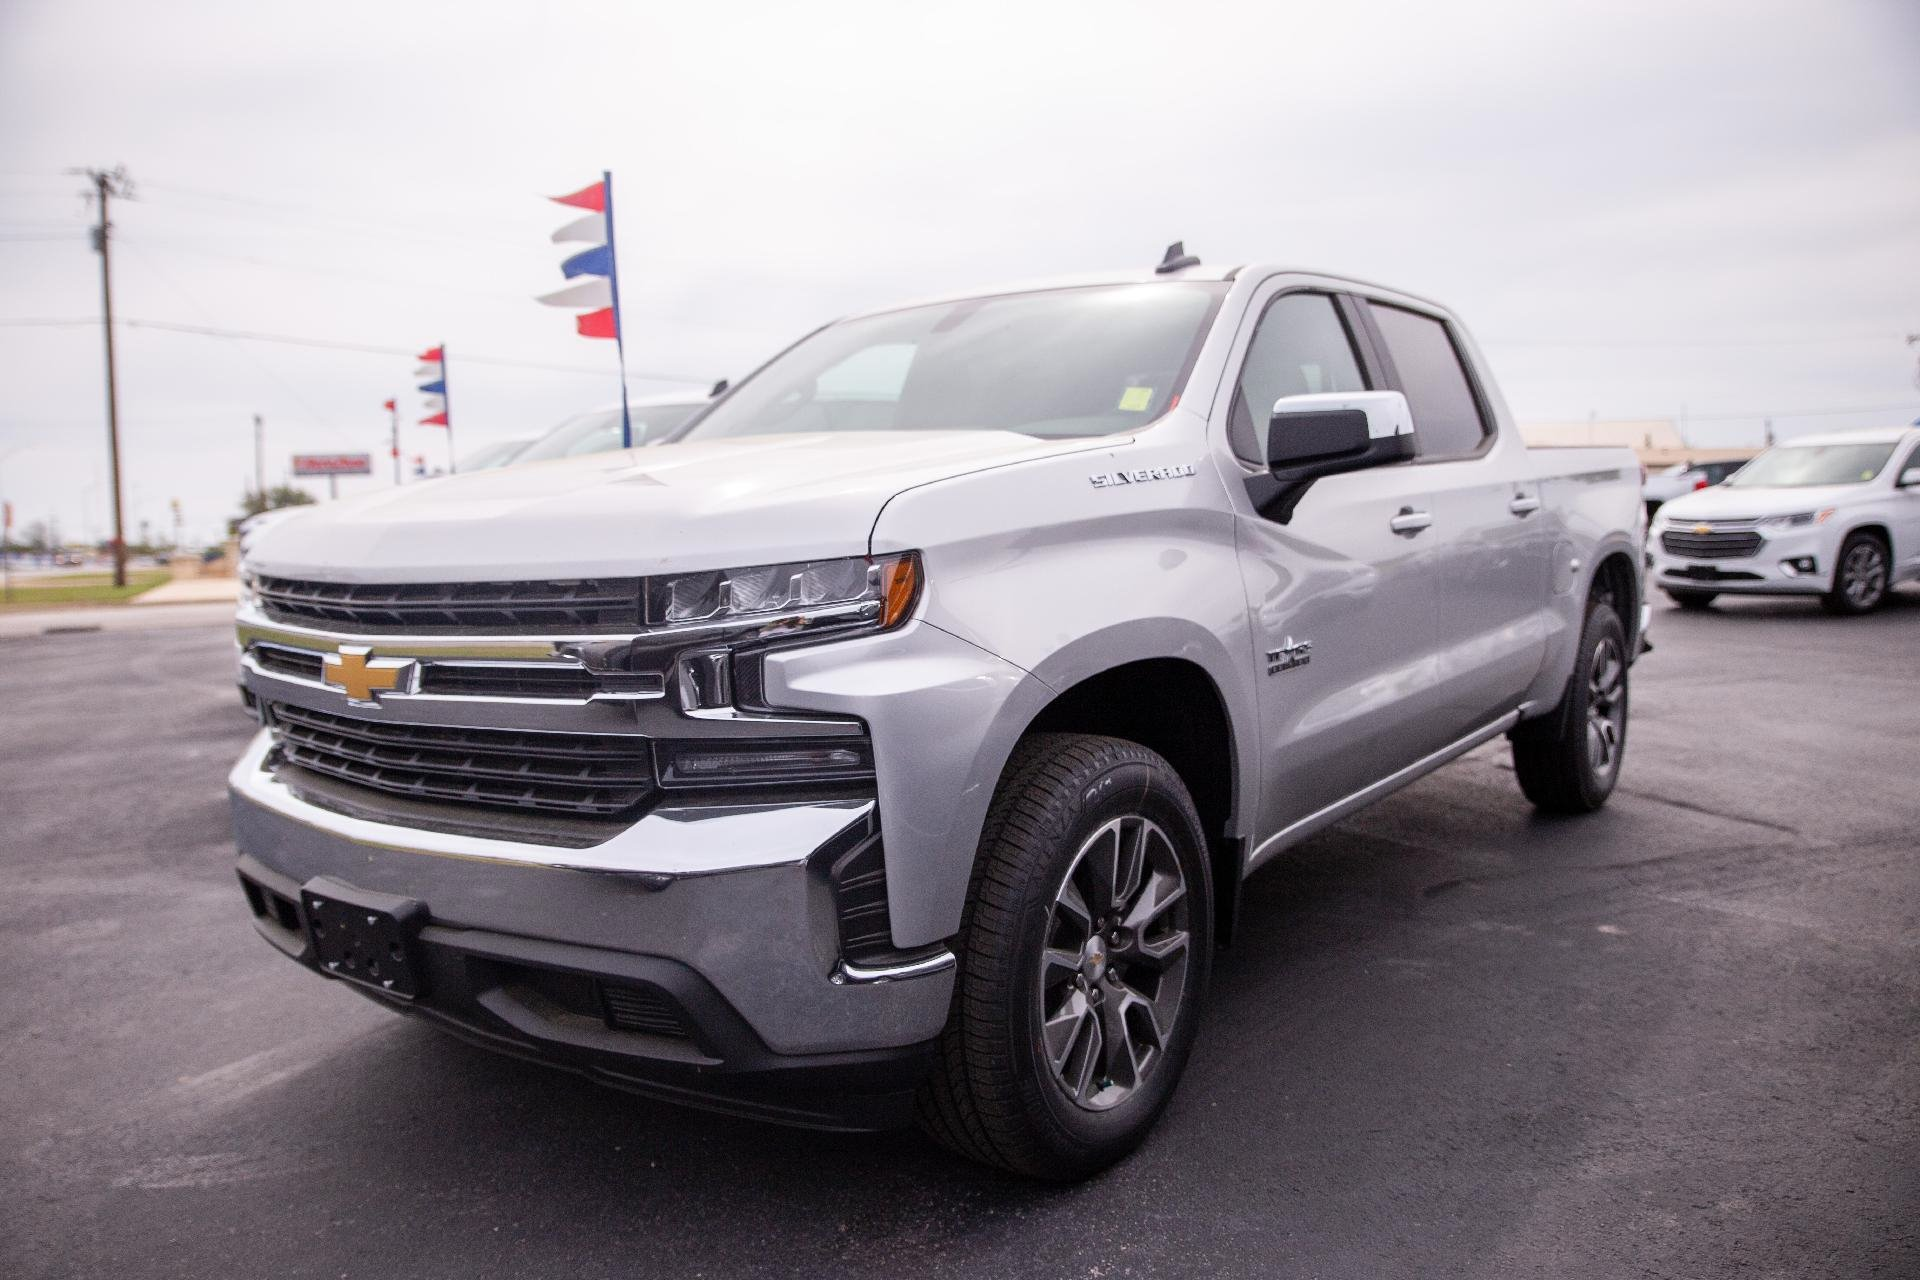 New 2019 Chevrolet-Colorado LT Colorado LT for sale $34,300 at M and V Leasing in Brooklyn NY 11223 1